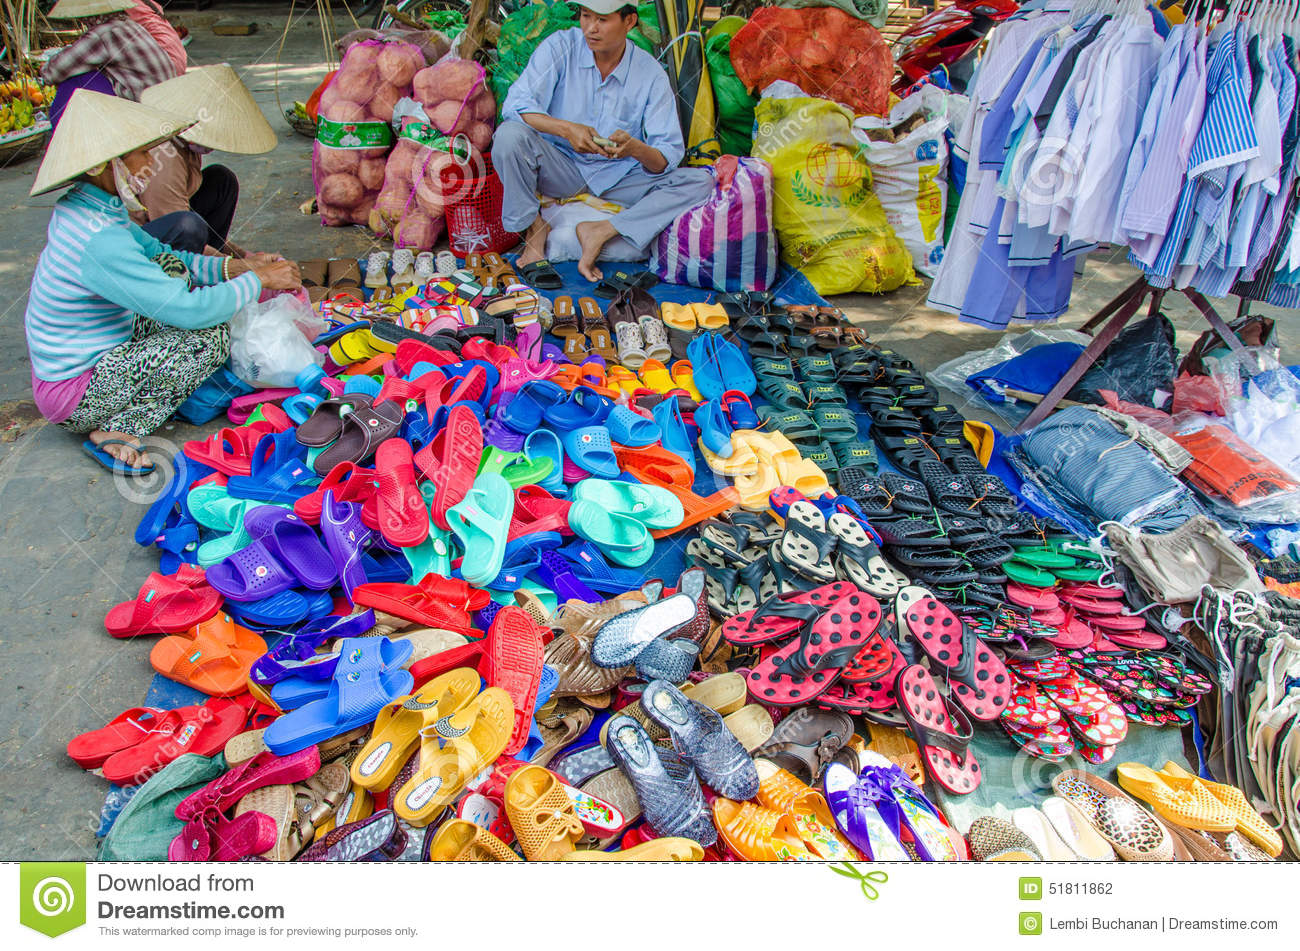 Sandals shoes sale - Two Women Examine The Colorful Sandals And Shoes For Sale At An Outdoor Market In Chan